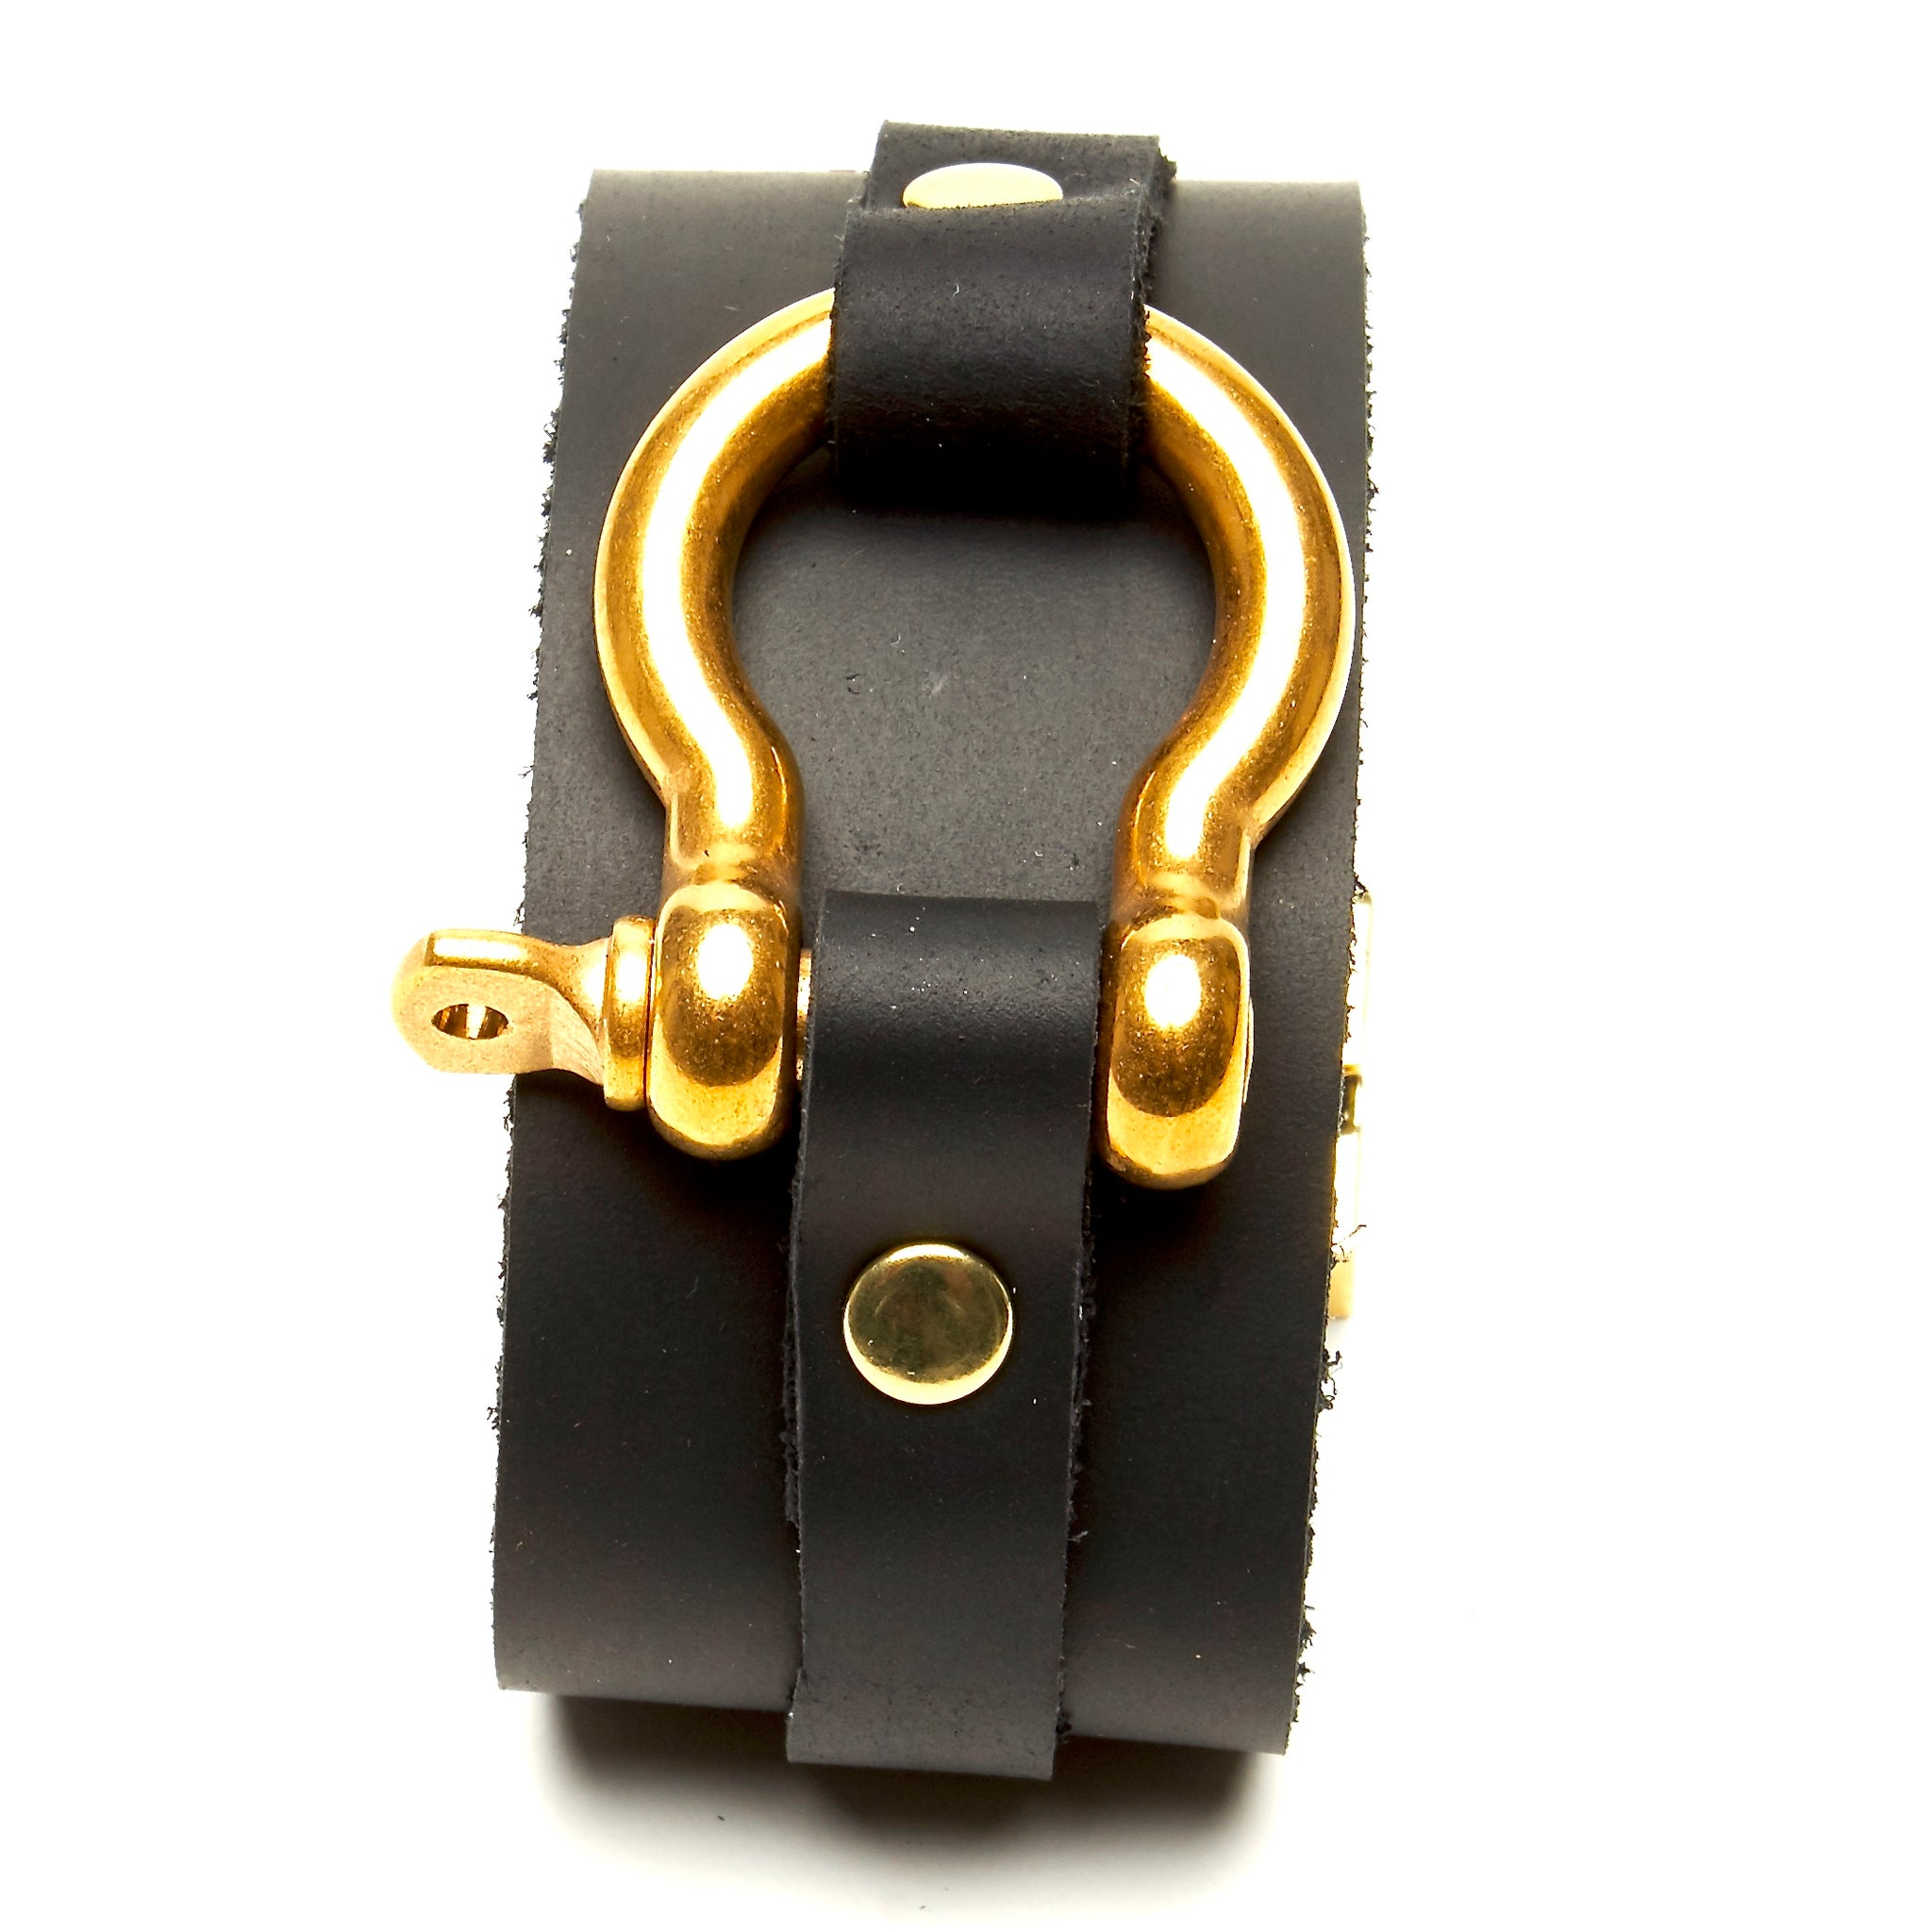 STONE OILED LEATHER CUFF WITH SHACKLE HARDWARE AND MAGNETIC CLASP. by nyet jewelry.